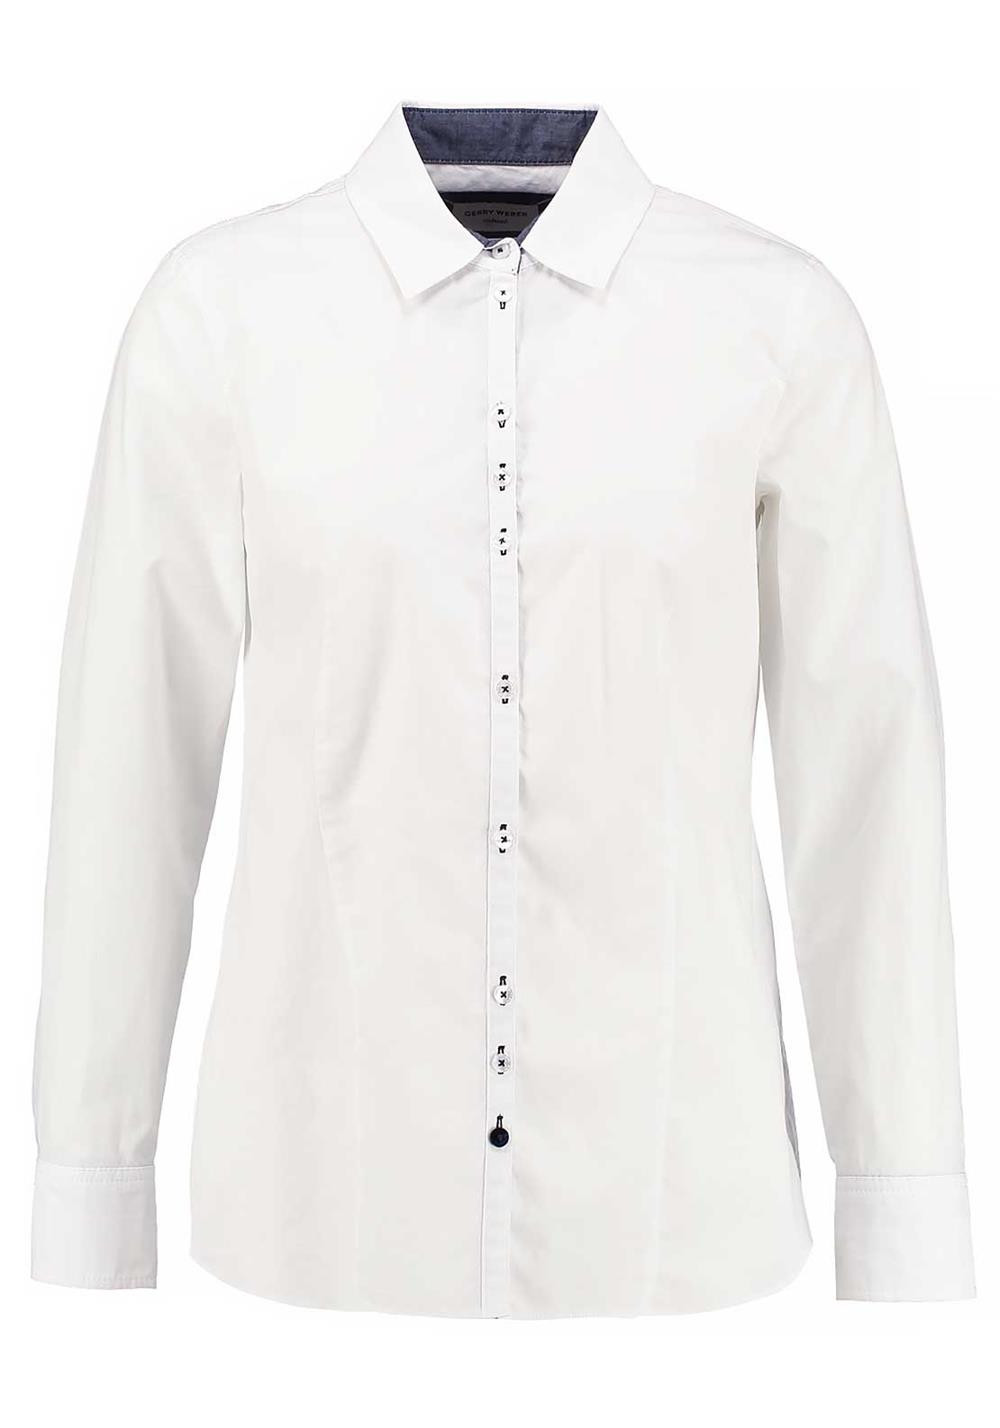 Gerry Weber Long Sleeve Cotton Blouse, White